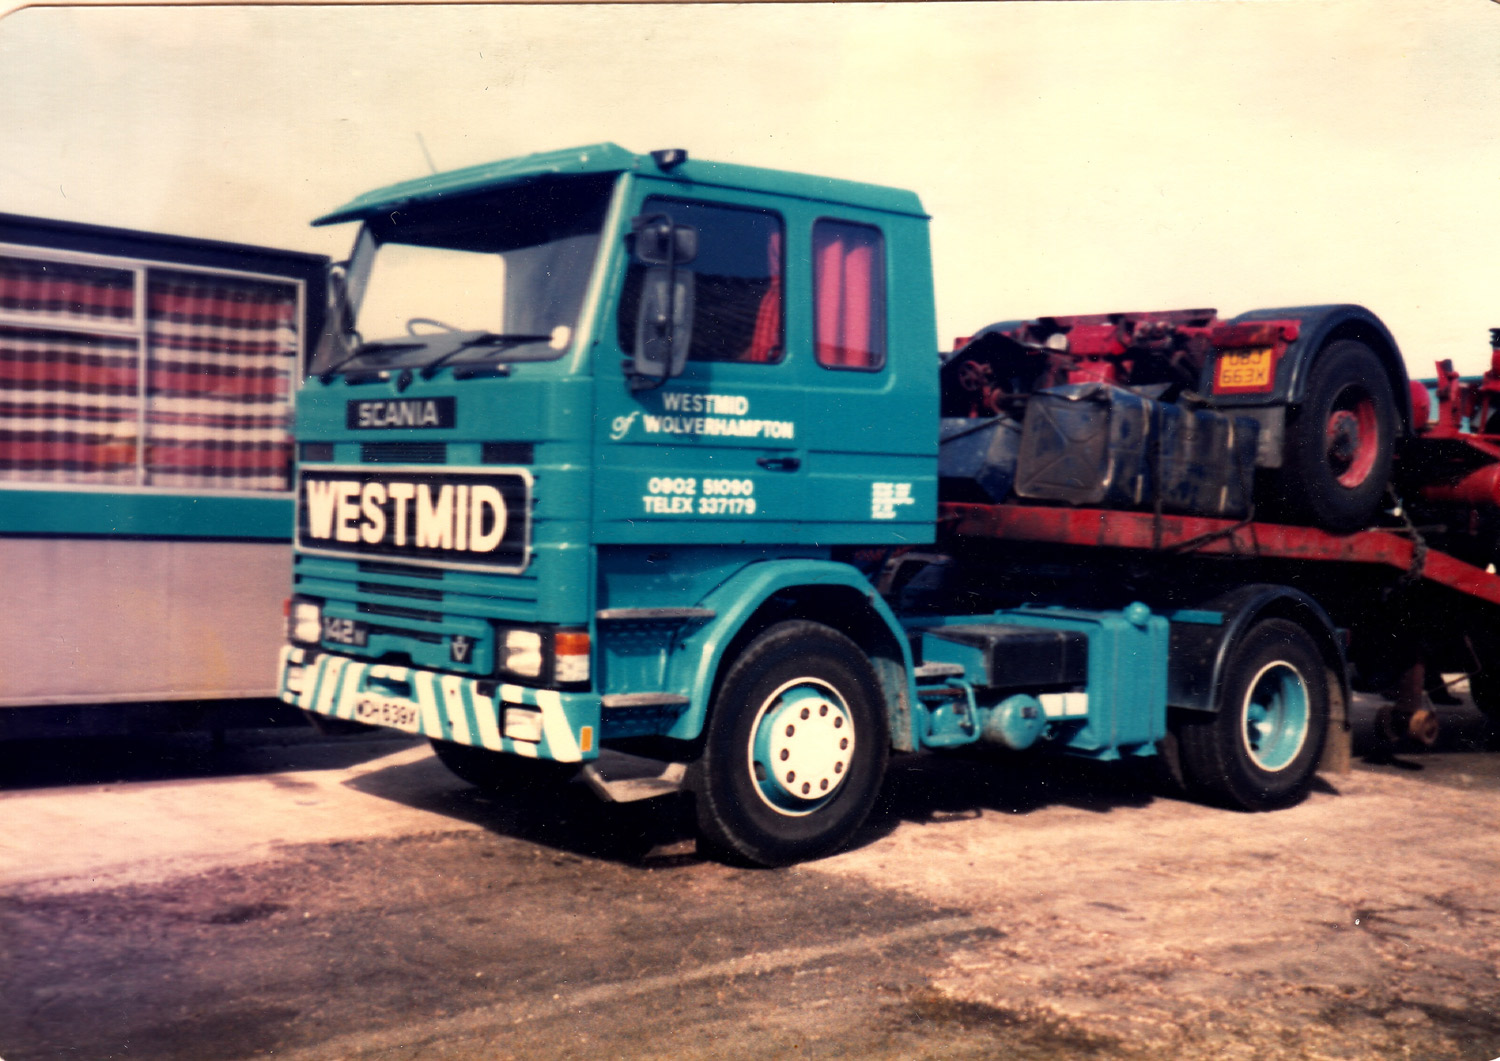 Westmid's first Scania R142 V8 tractor unit.